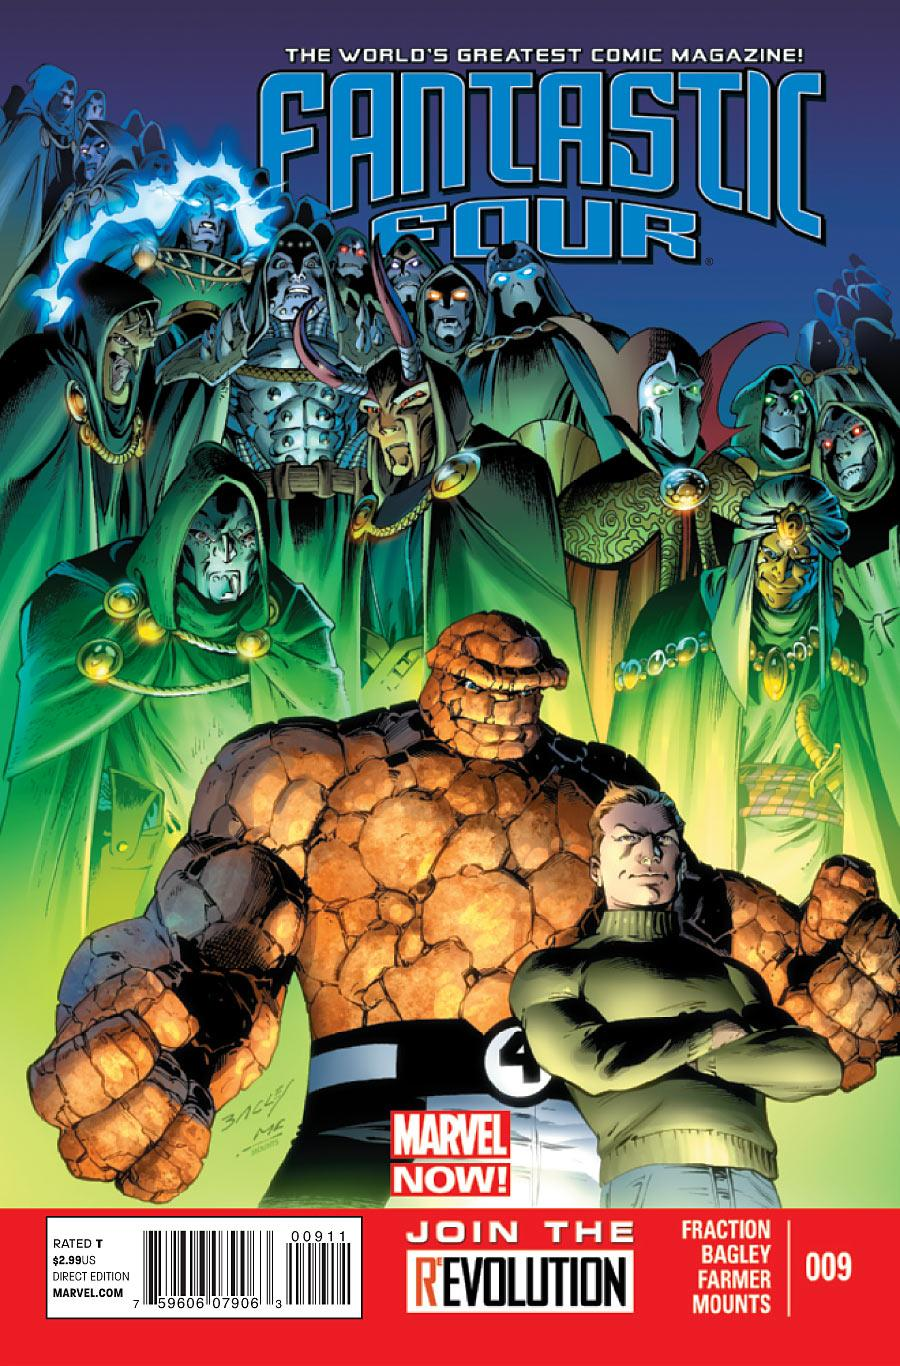 Fantastic Four Vol. 4 #9